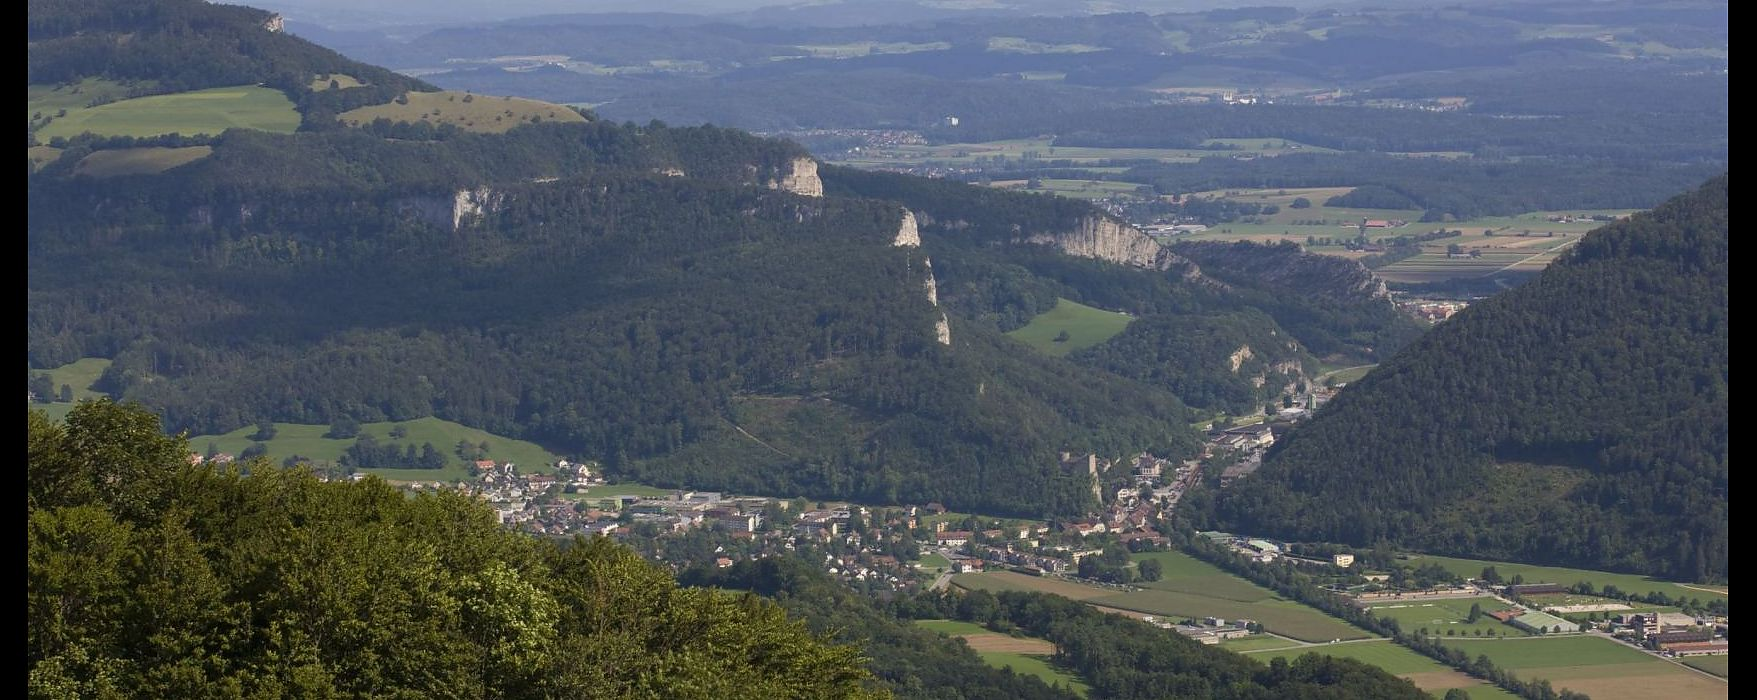 Naturpark Thal - © Switzerland Tourism-BAFU